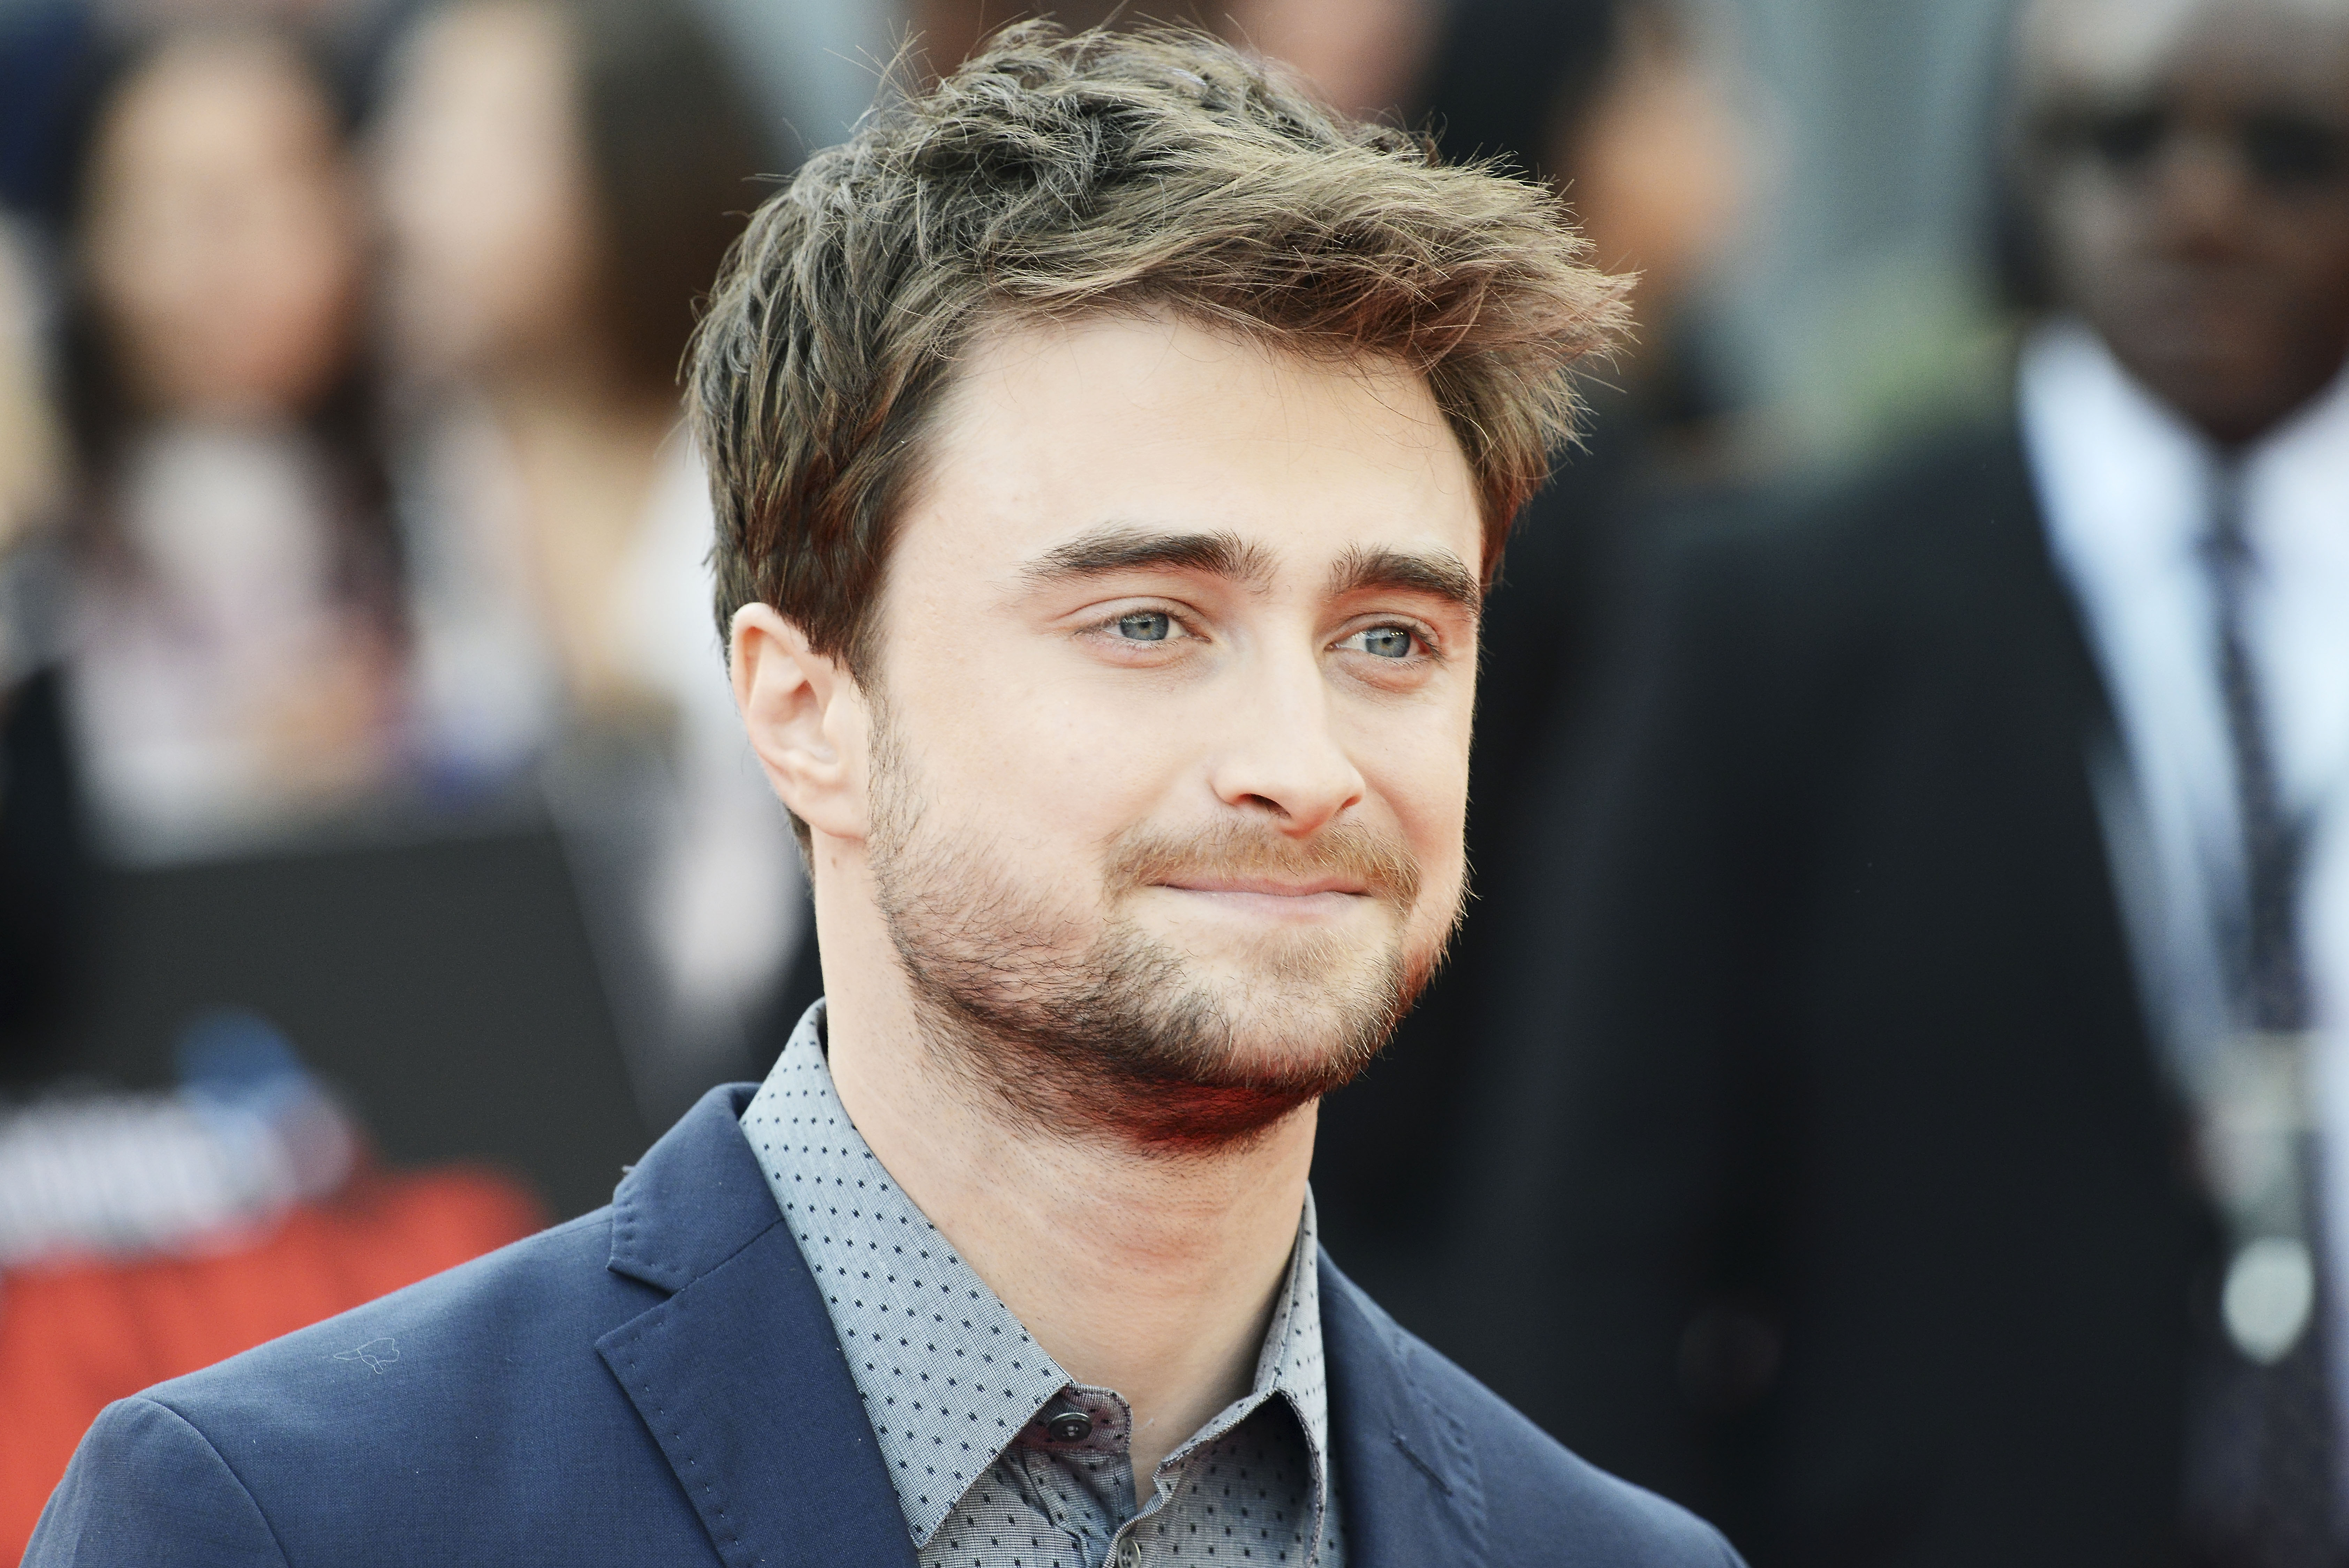 Donald Trump once gave Daniel Radcliffe the WORST advice in the world